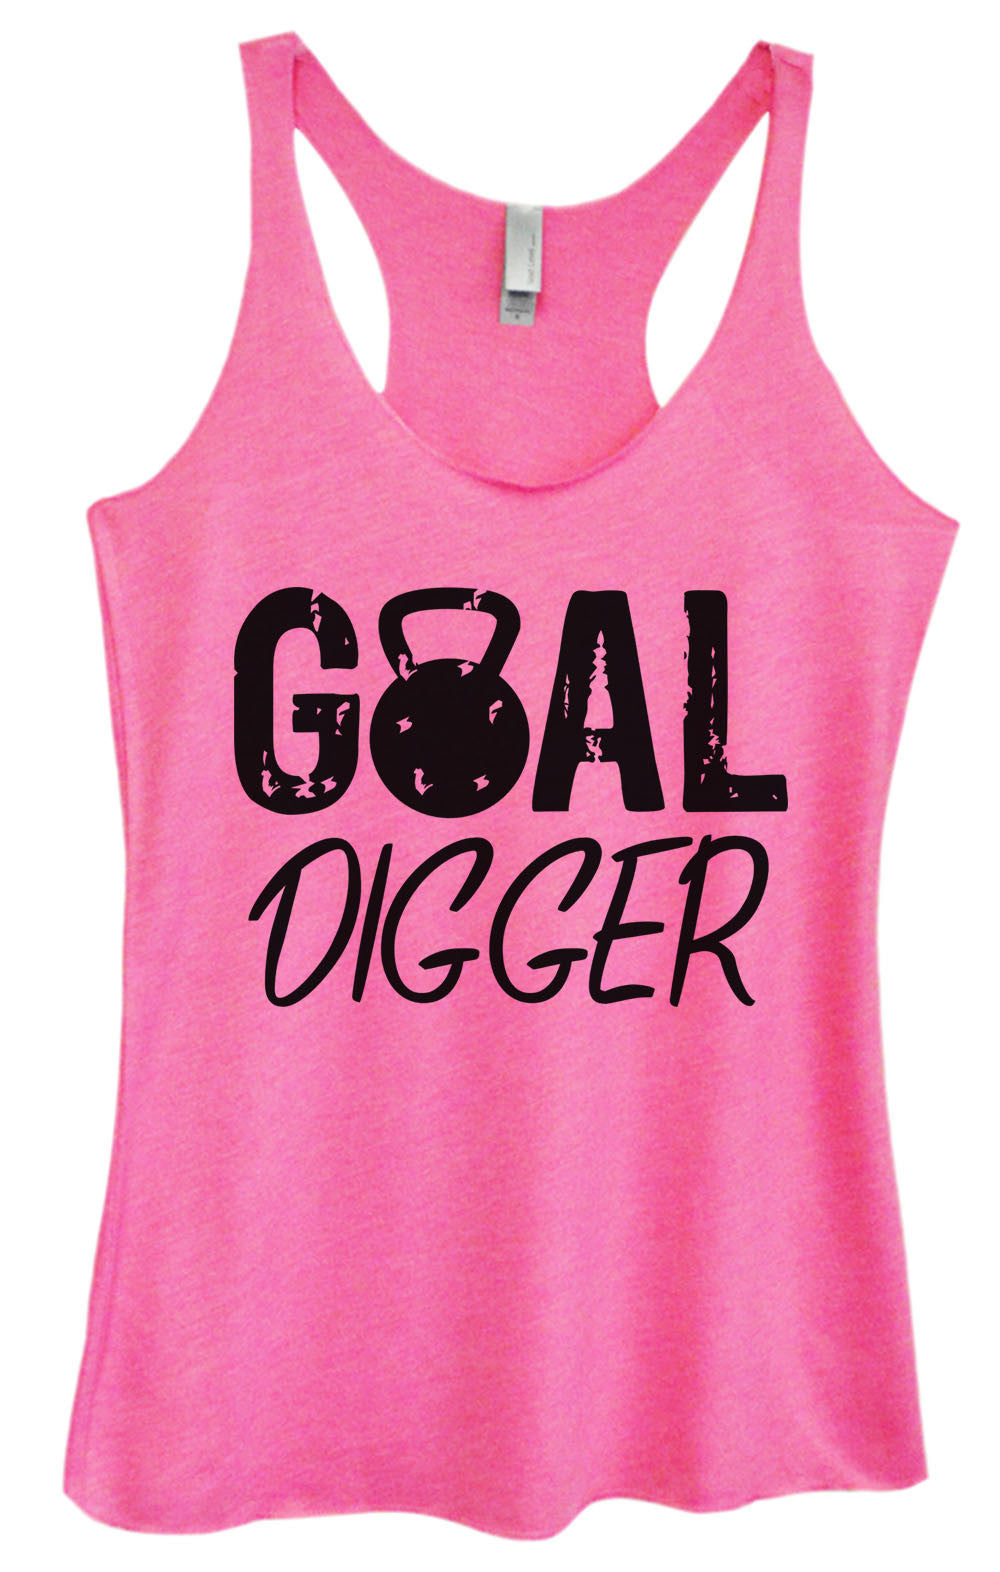 Womens Fashion Triblend Tank Top - Goal Digger - Tri-959 - Funny Shirts Tank Tops Burnouts and Triblends  - 4